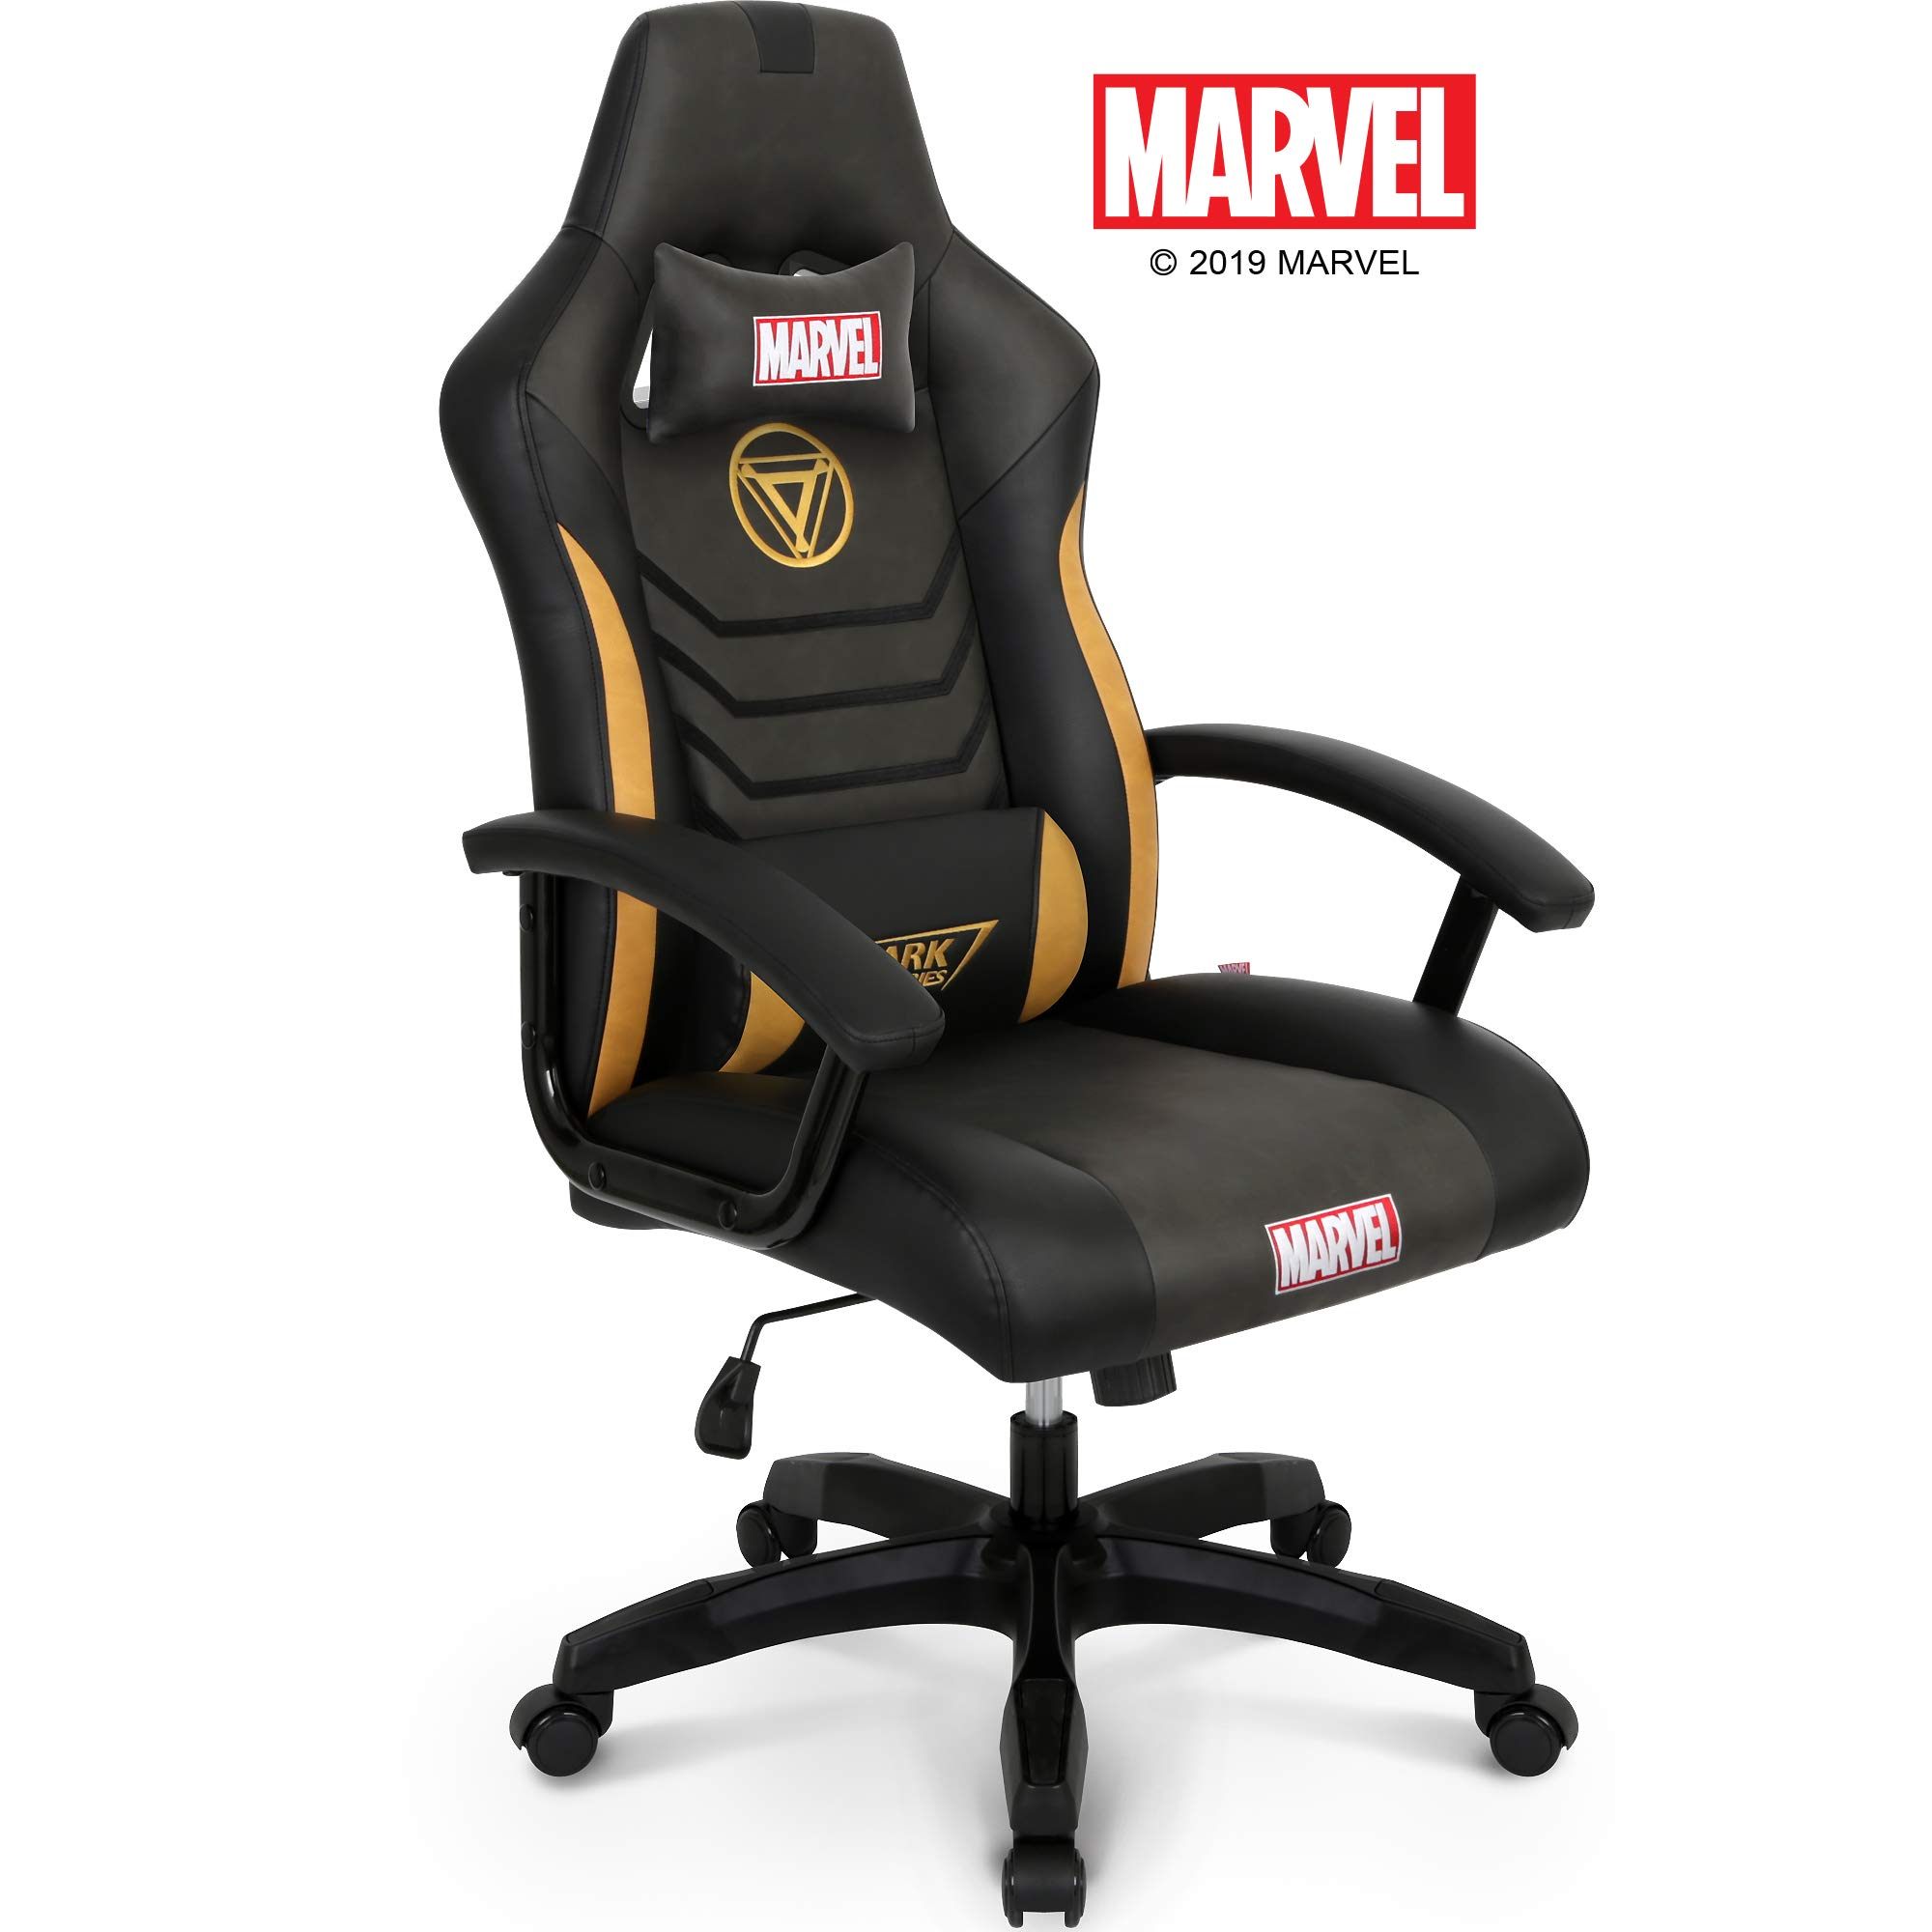 Marvel Avengers Iron Man Big & Wide Heavy Duty 330 lbs Gaming Chair Office Chair Computer Racing Desk Chair Black Gold - Endgame & Infinity War Series, Marvel Legends by Neo Chair